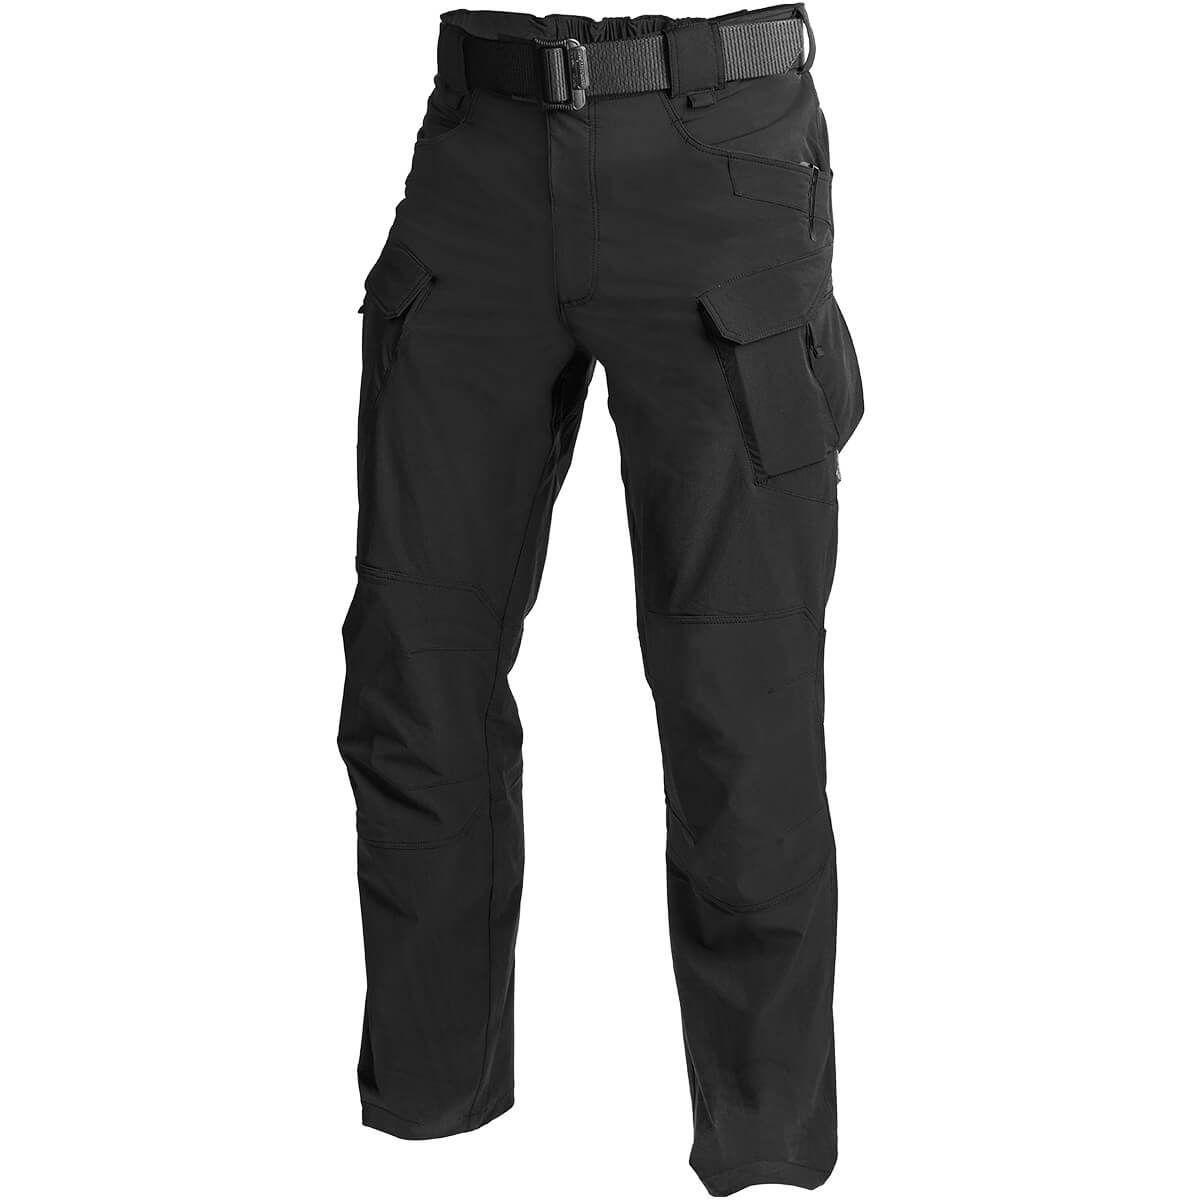 "Брюки Outdoor Tactical Pants®"" (Black) SP-OTP-NL-01 (M,L,XL,XXL)"